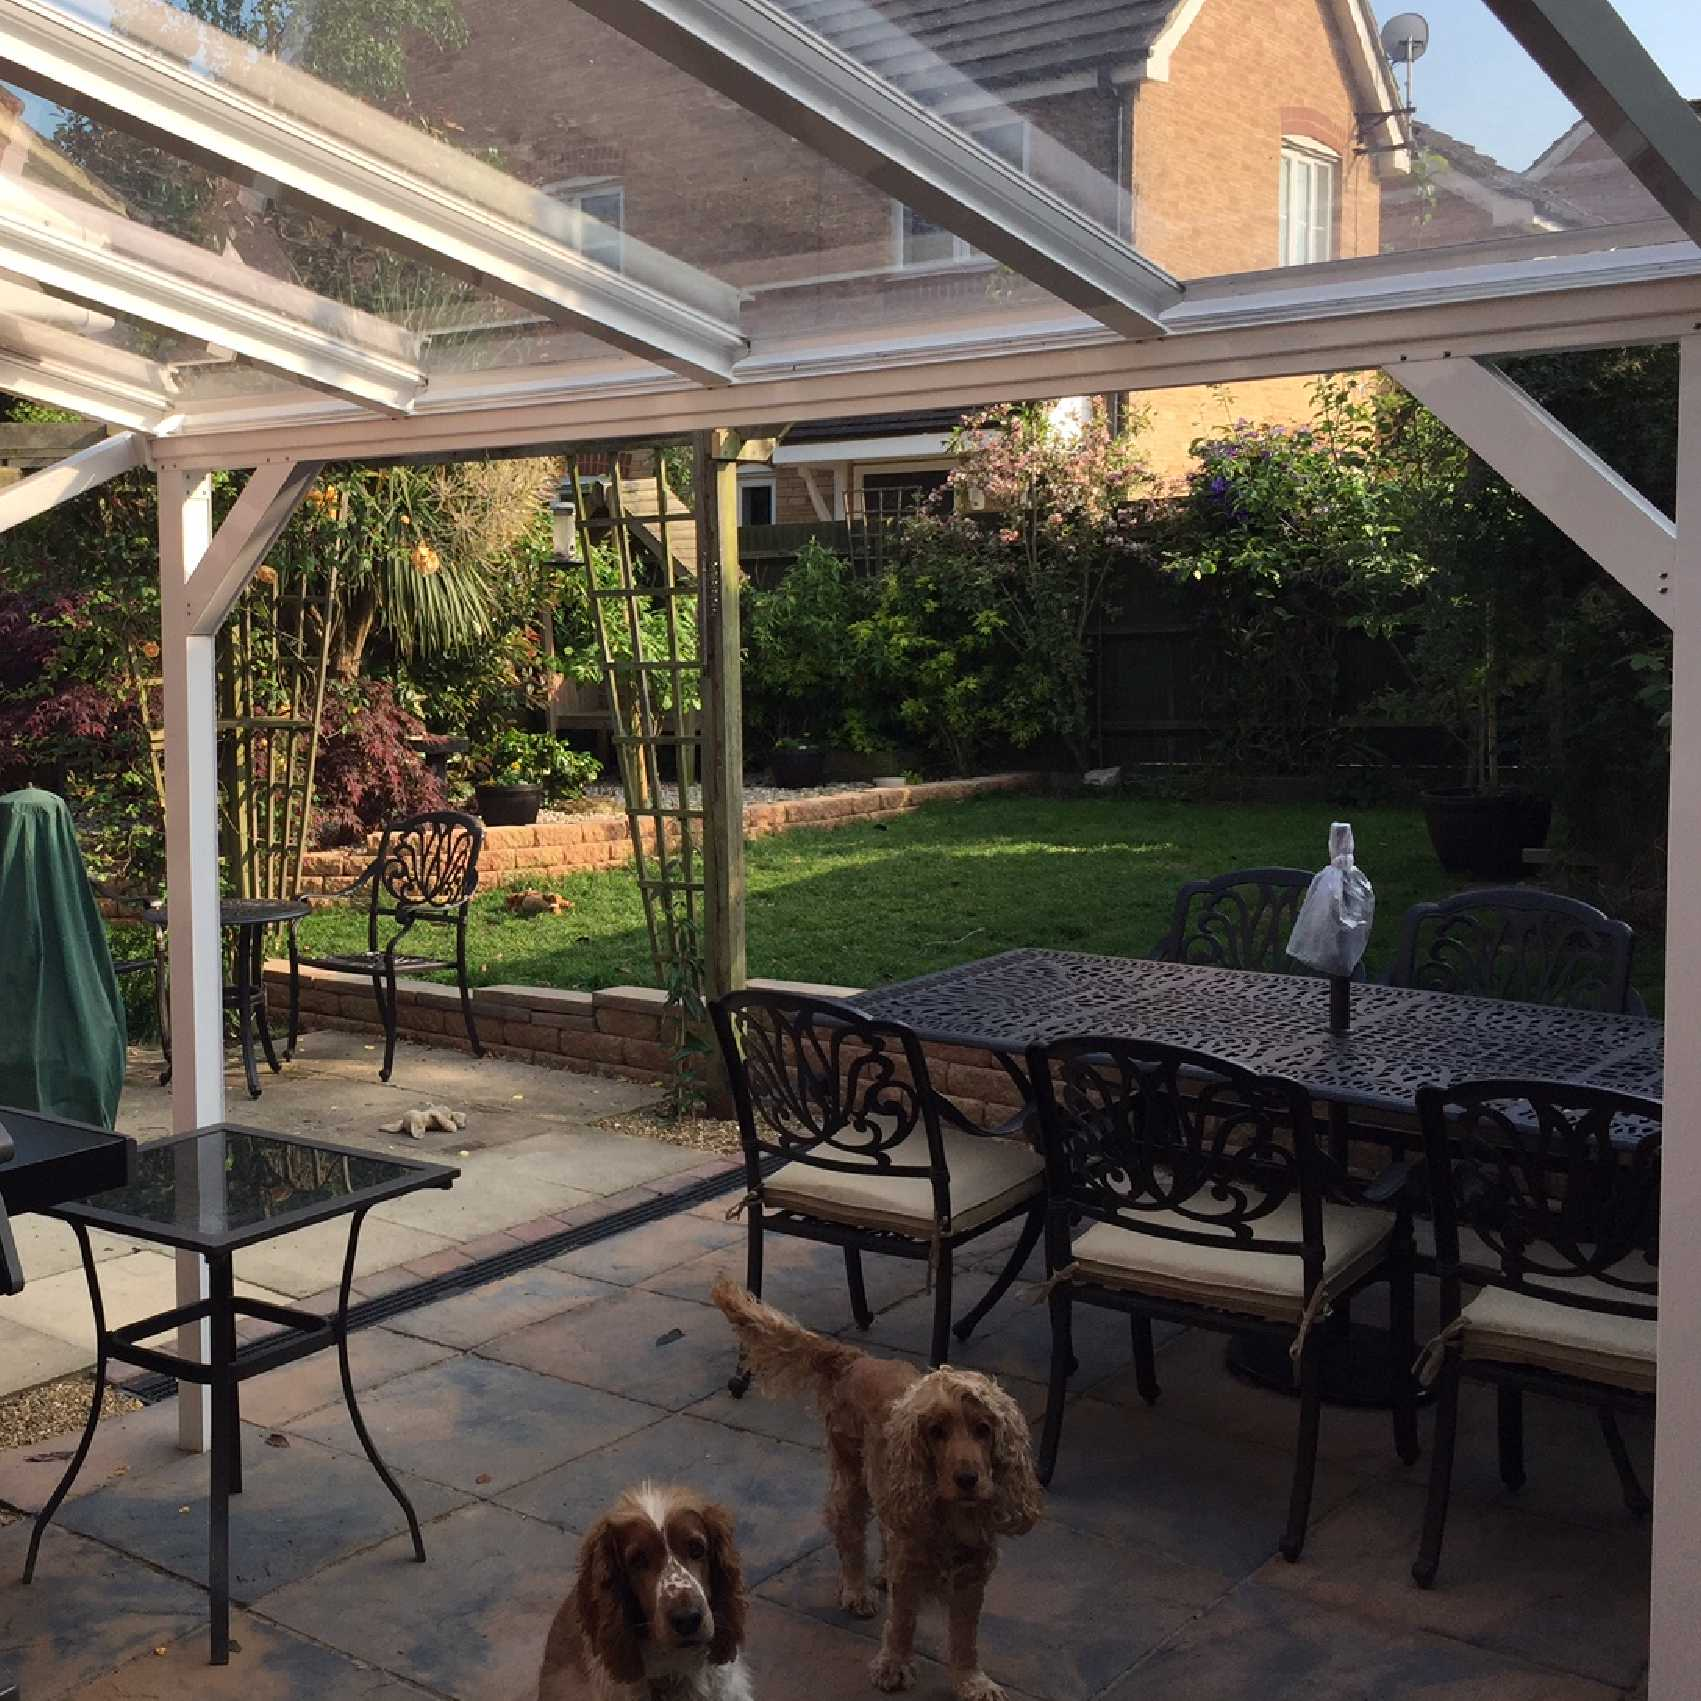 Affordable Omega Smart Lean-To Canopy with 6mm Glass Clear Plate Polycarbonate Glazing - 5.2m (W) x 4.0m (P), (3) Supporting Posts